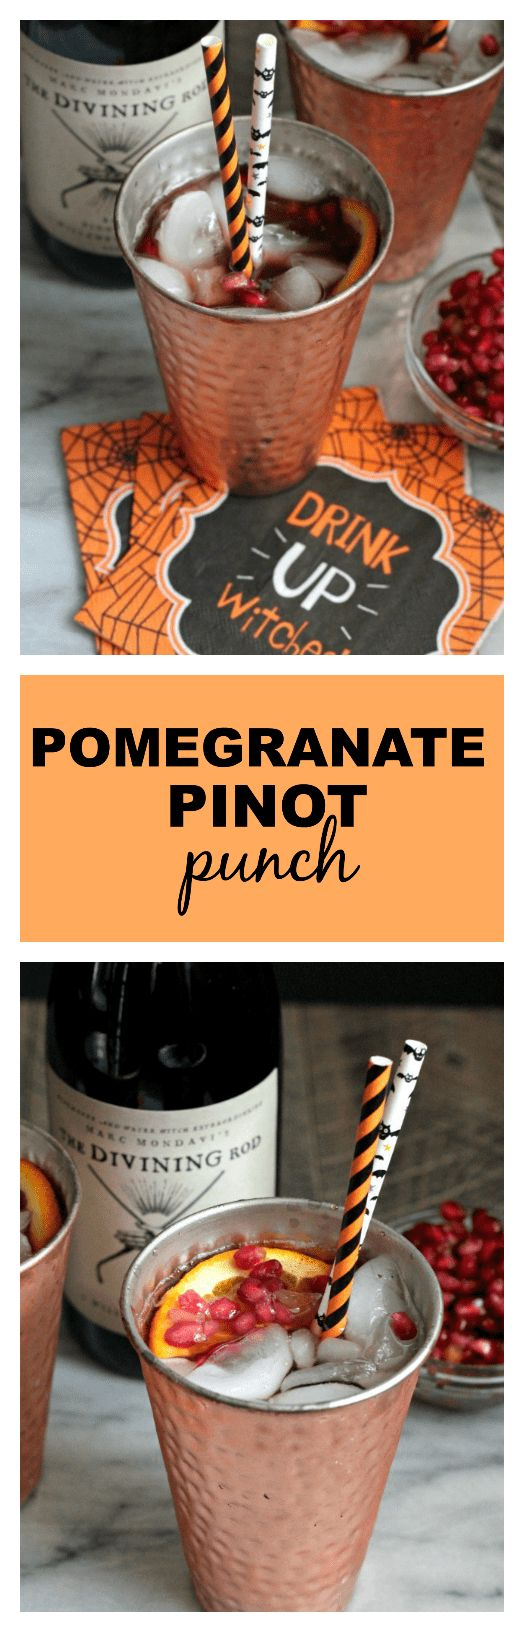 Pomegranate Pinot Punch | casadecrews.com